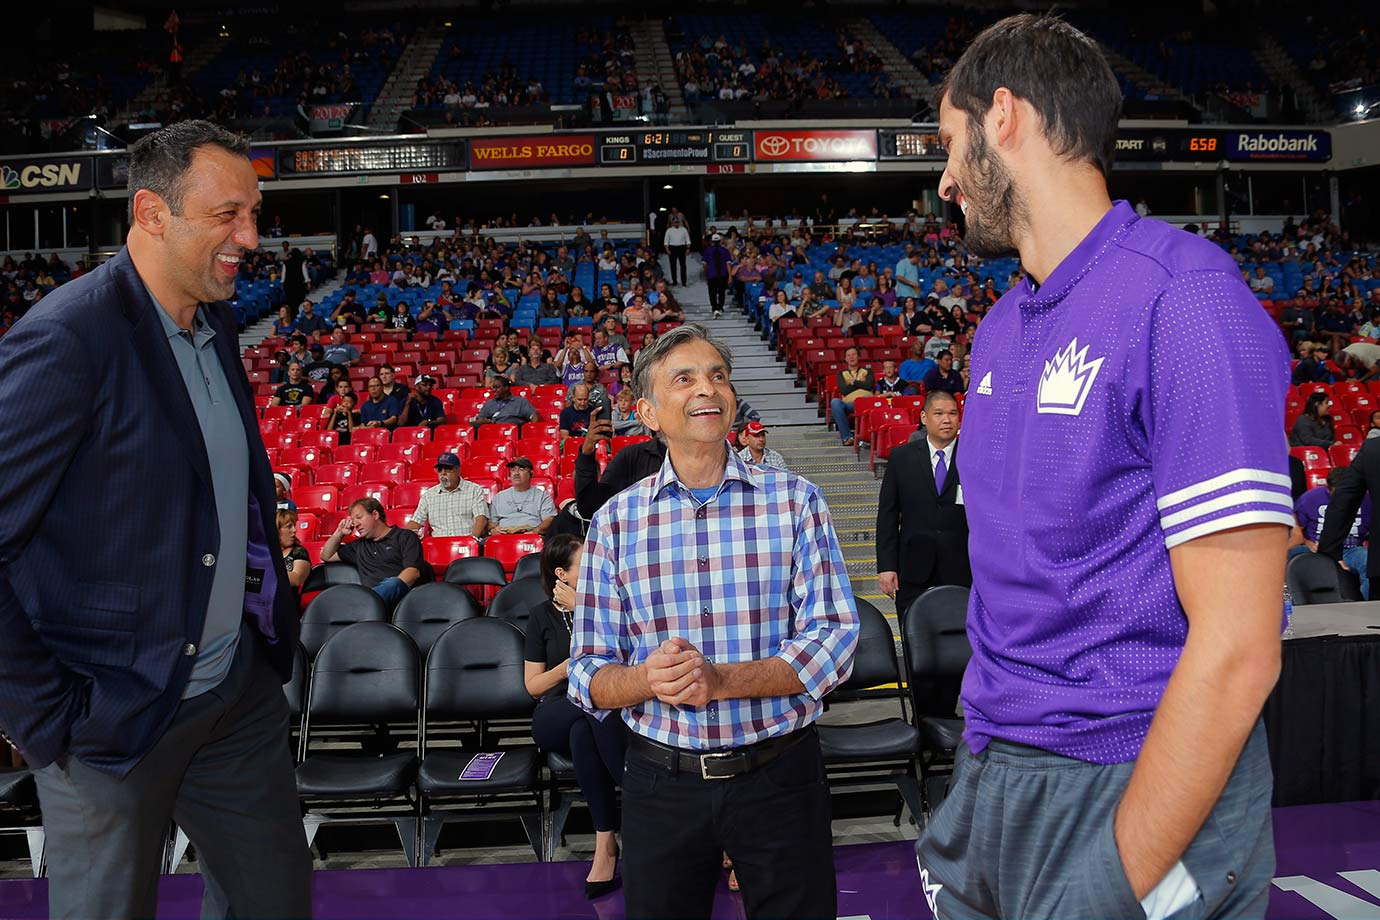 If the government is worried about daily fantasy sites taking advantage of an unsuspecting public, just hand DraftKings over to Vivek Ranadive and have him run the company into the ground.